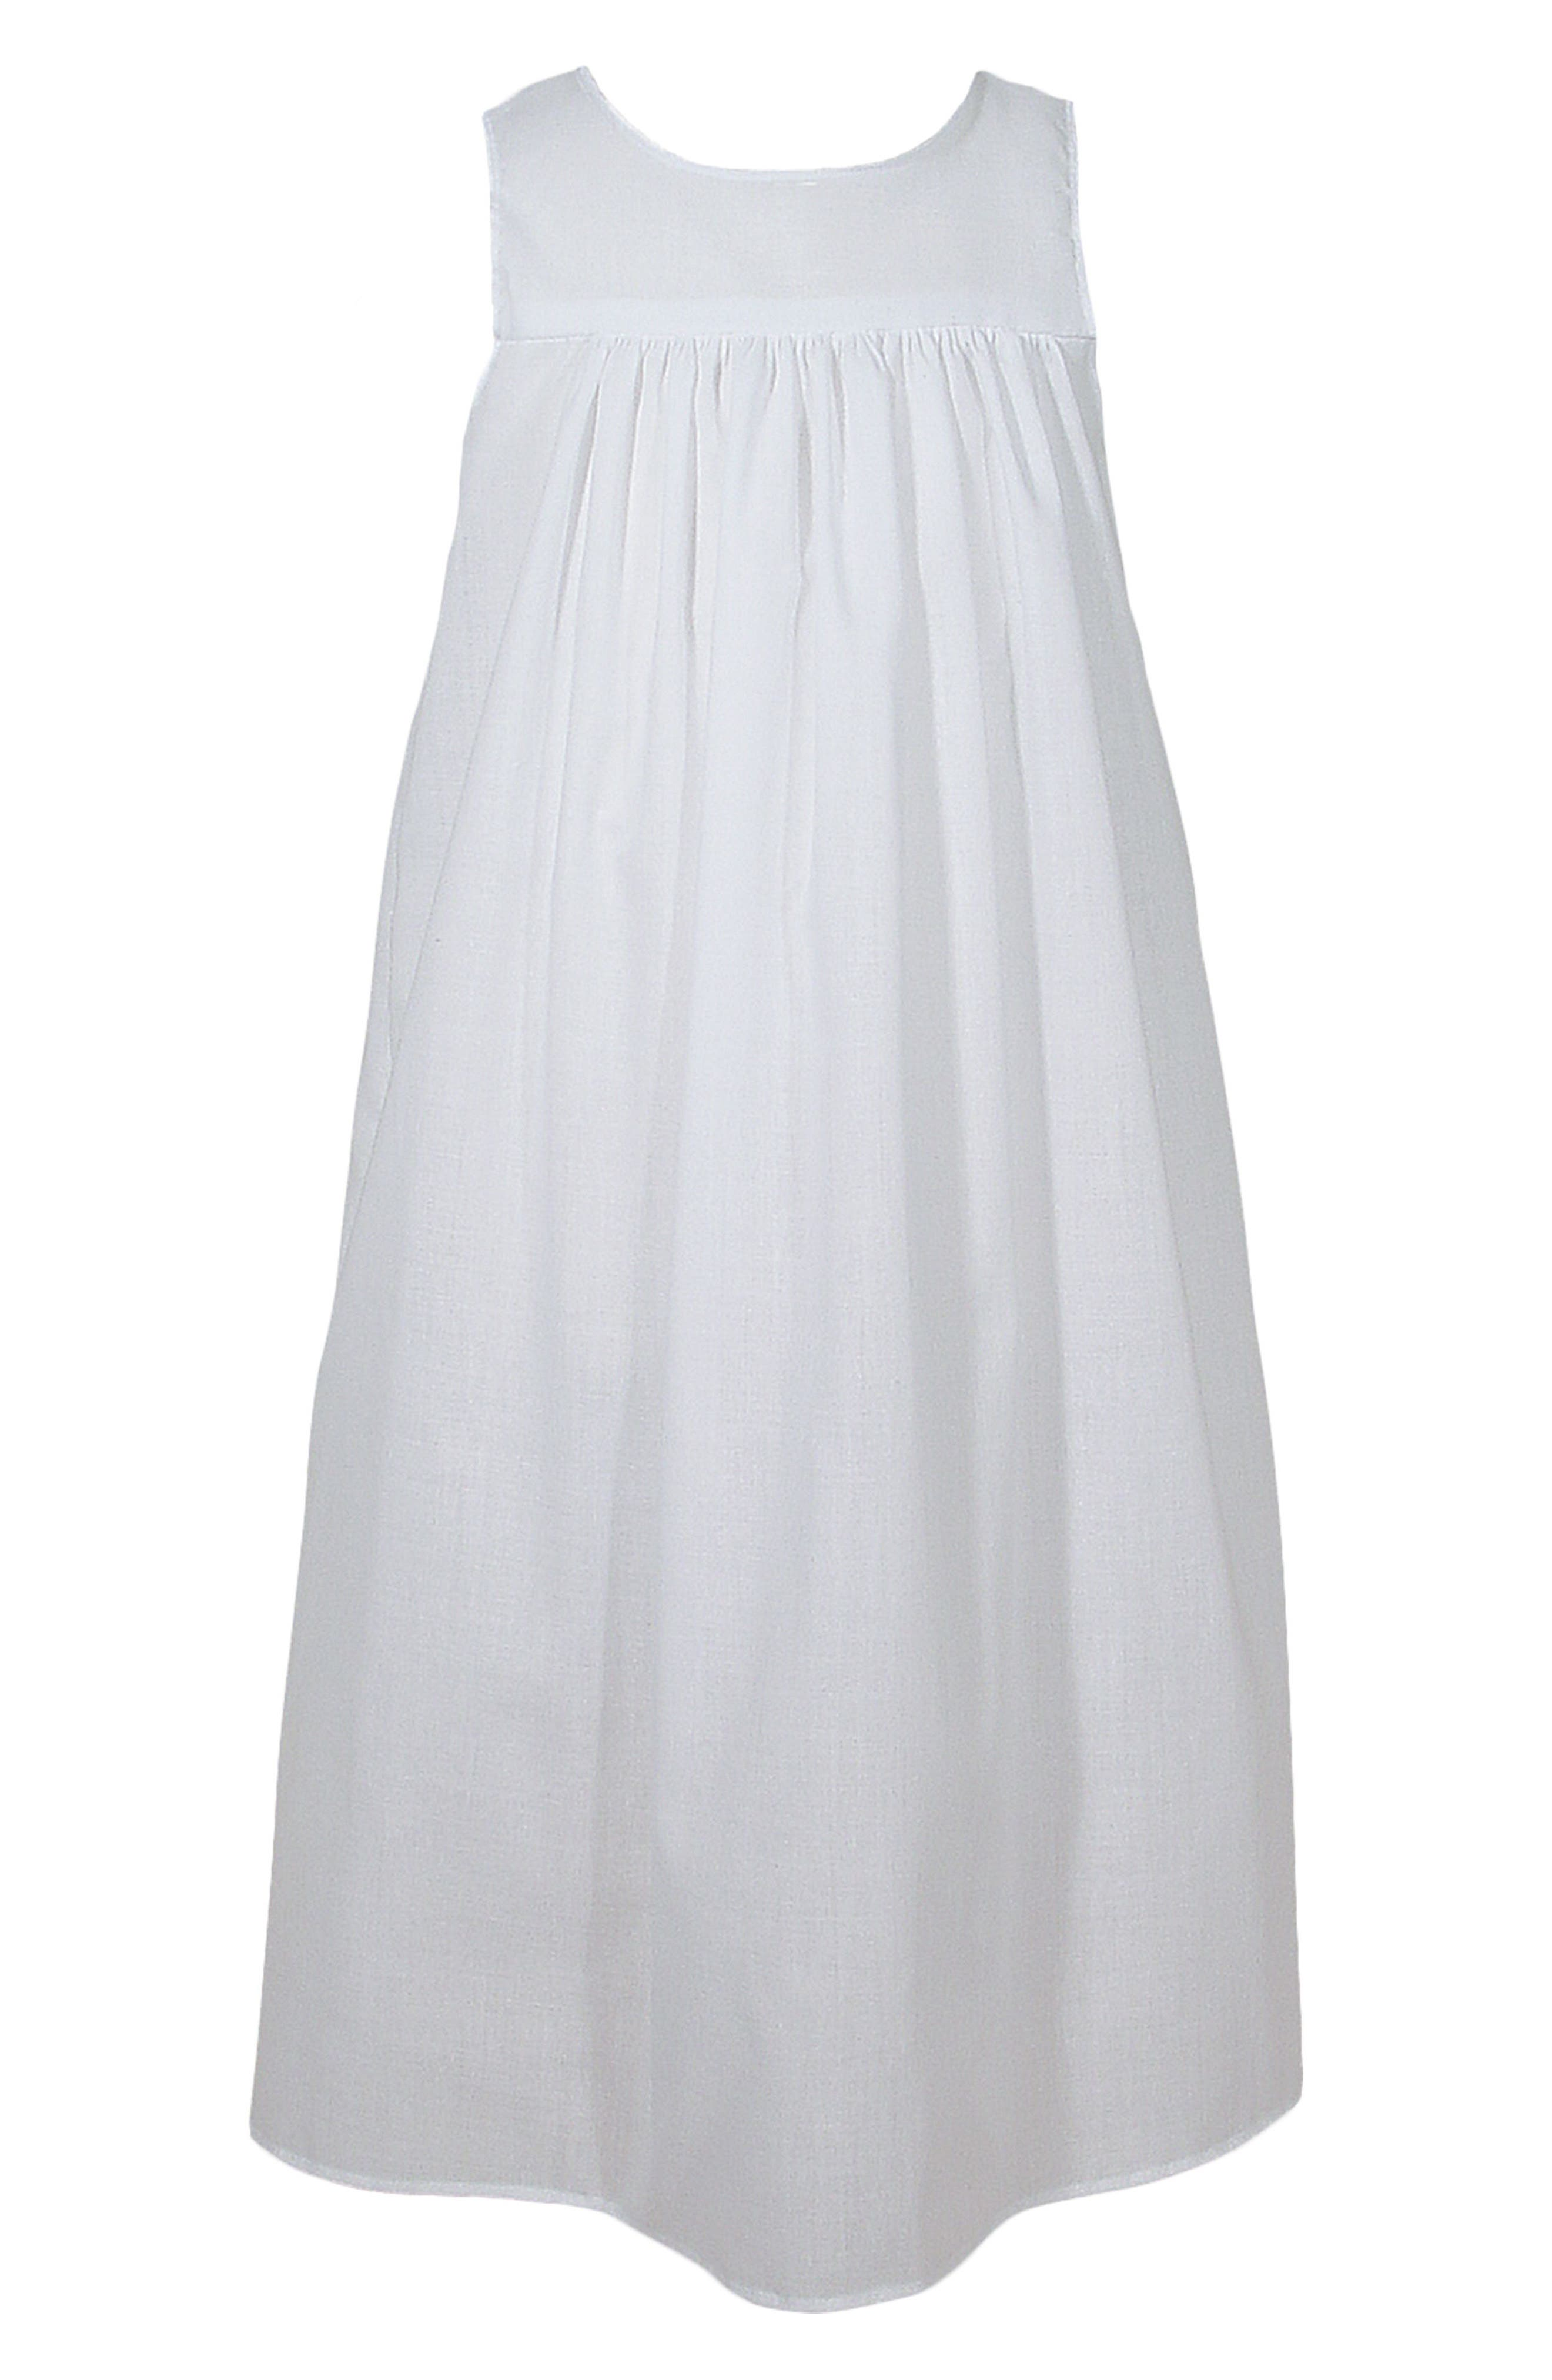 LITTLE THINGS MEAN A LOT, Christening Gown Slip, Main thumbnail 1, color, WHITE